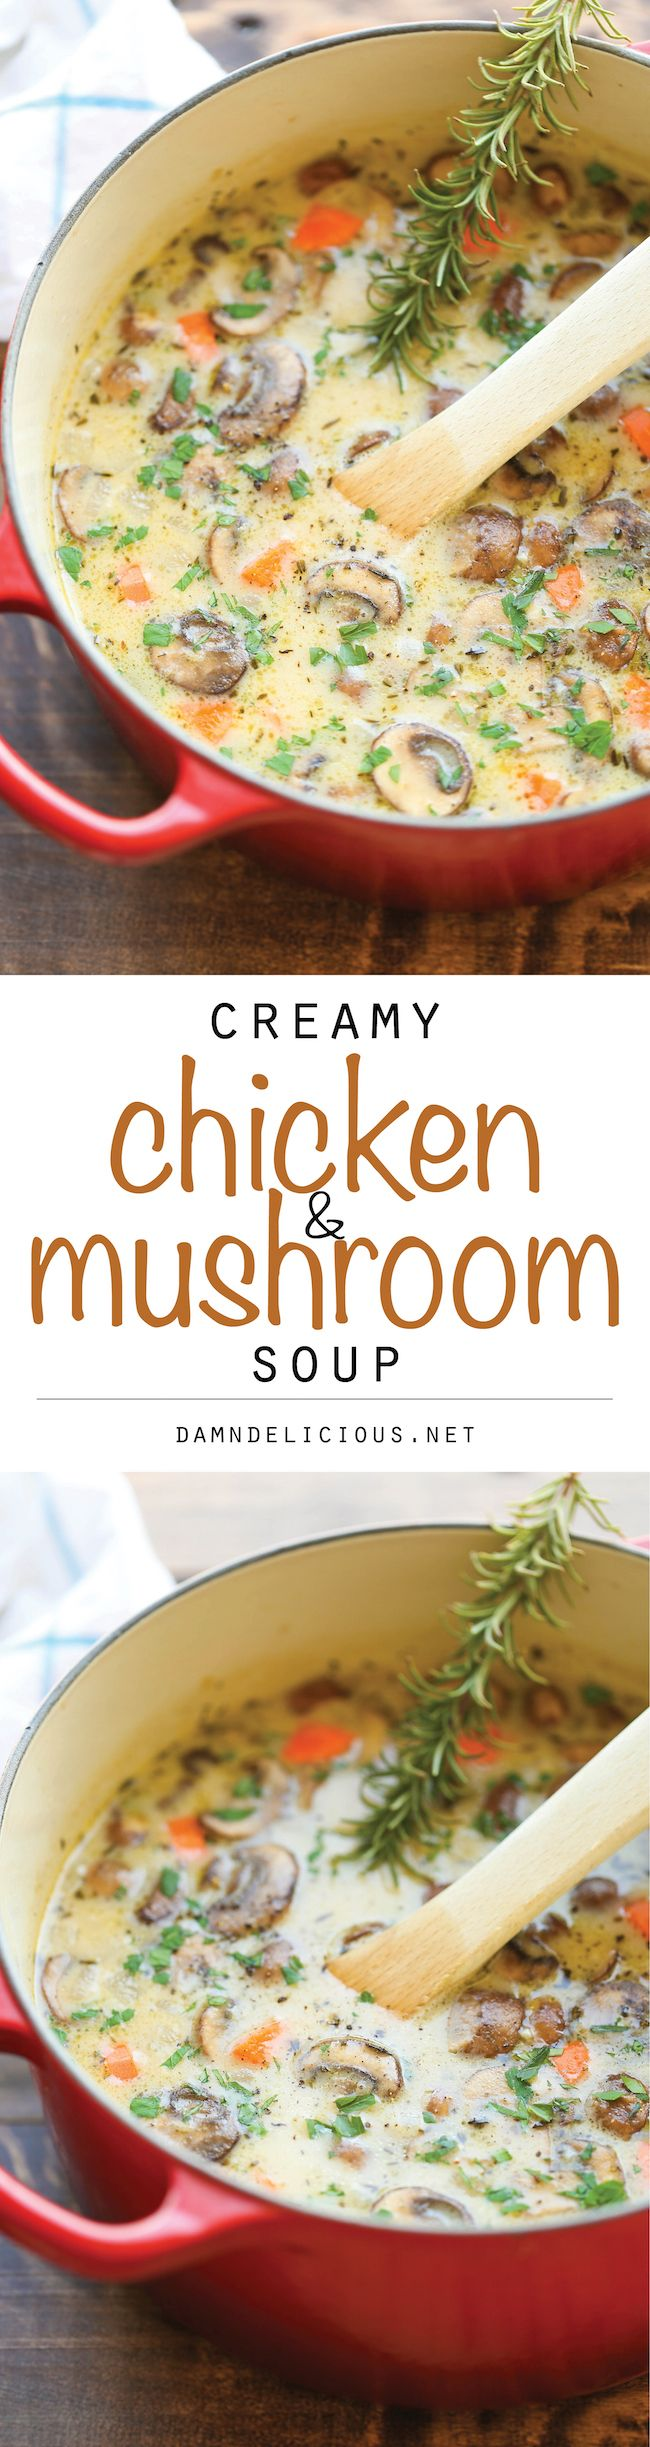 Sense - Creamy Chicken and Mushroom Soup - So cozy, so comforting and just so creamy. Best of all, this is made in 30 min from start to finish - so quick and easy!